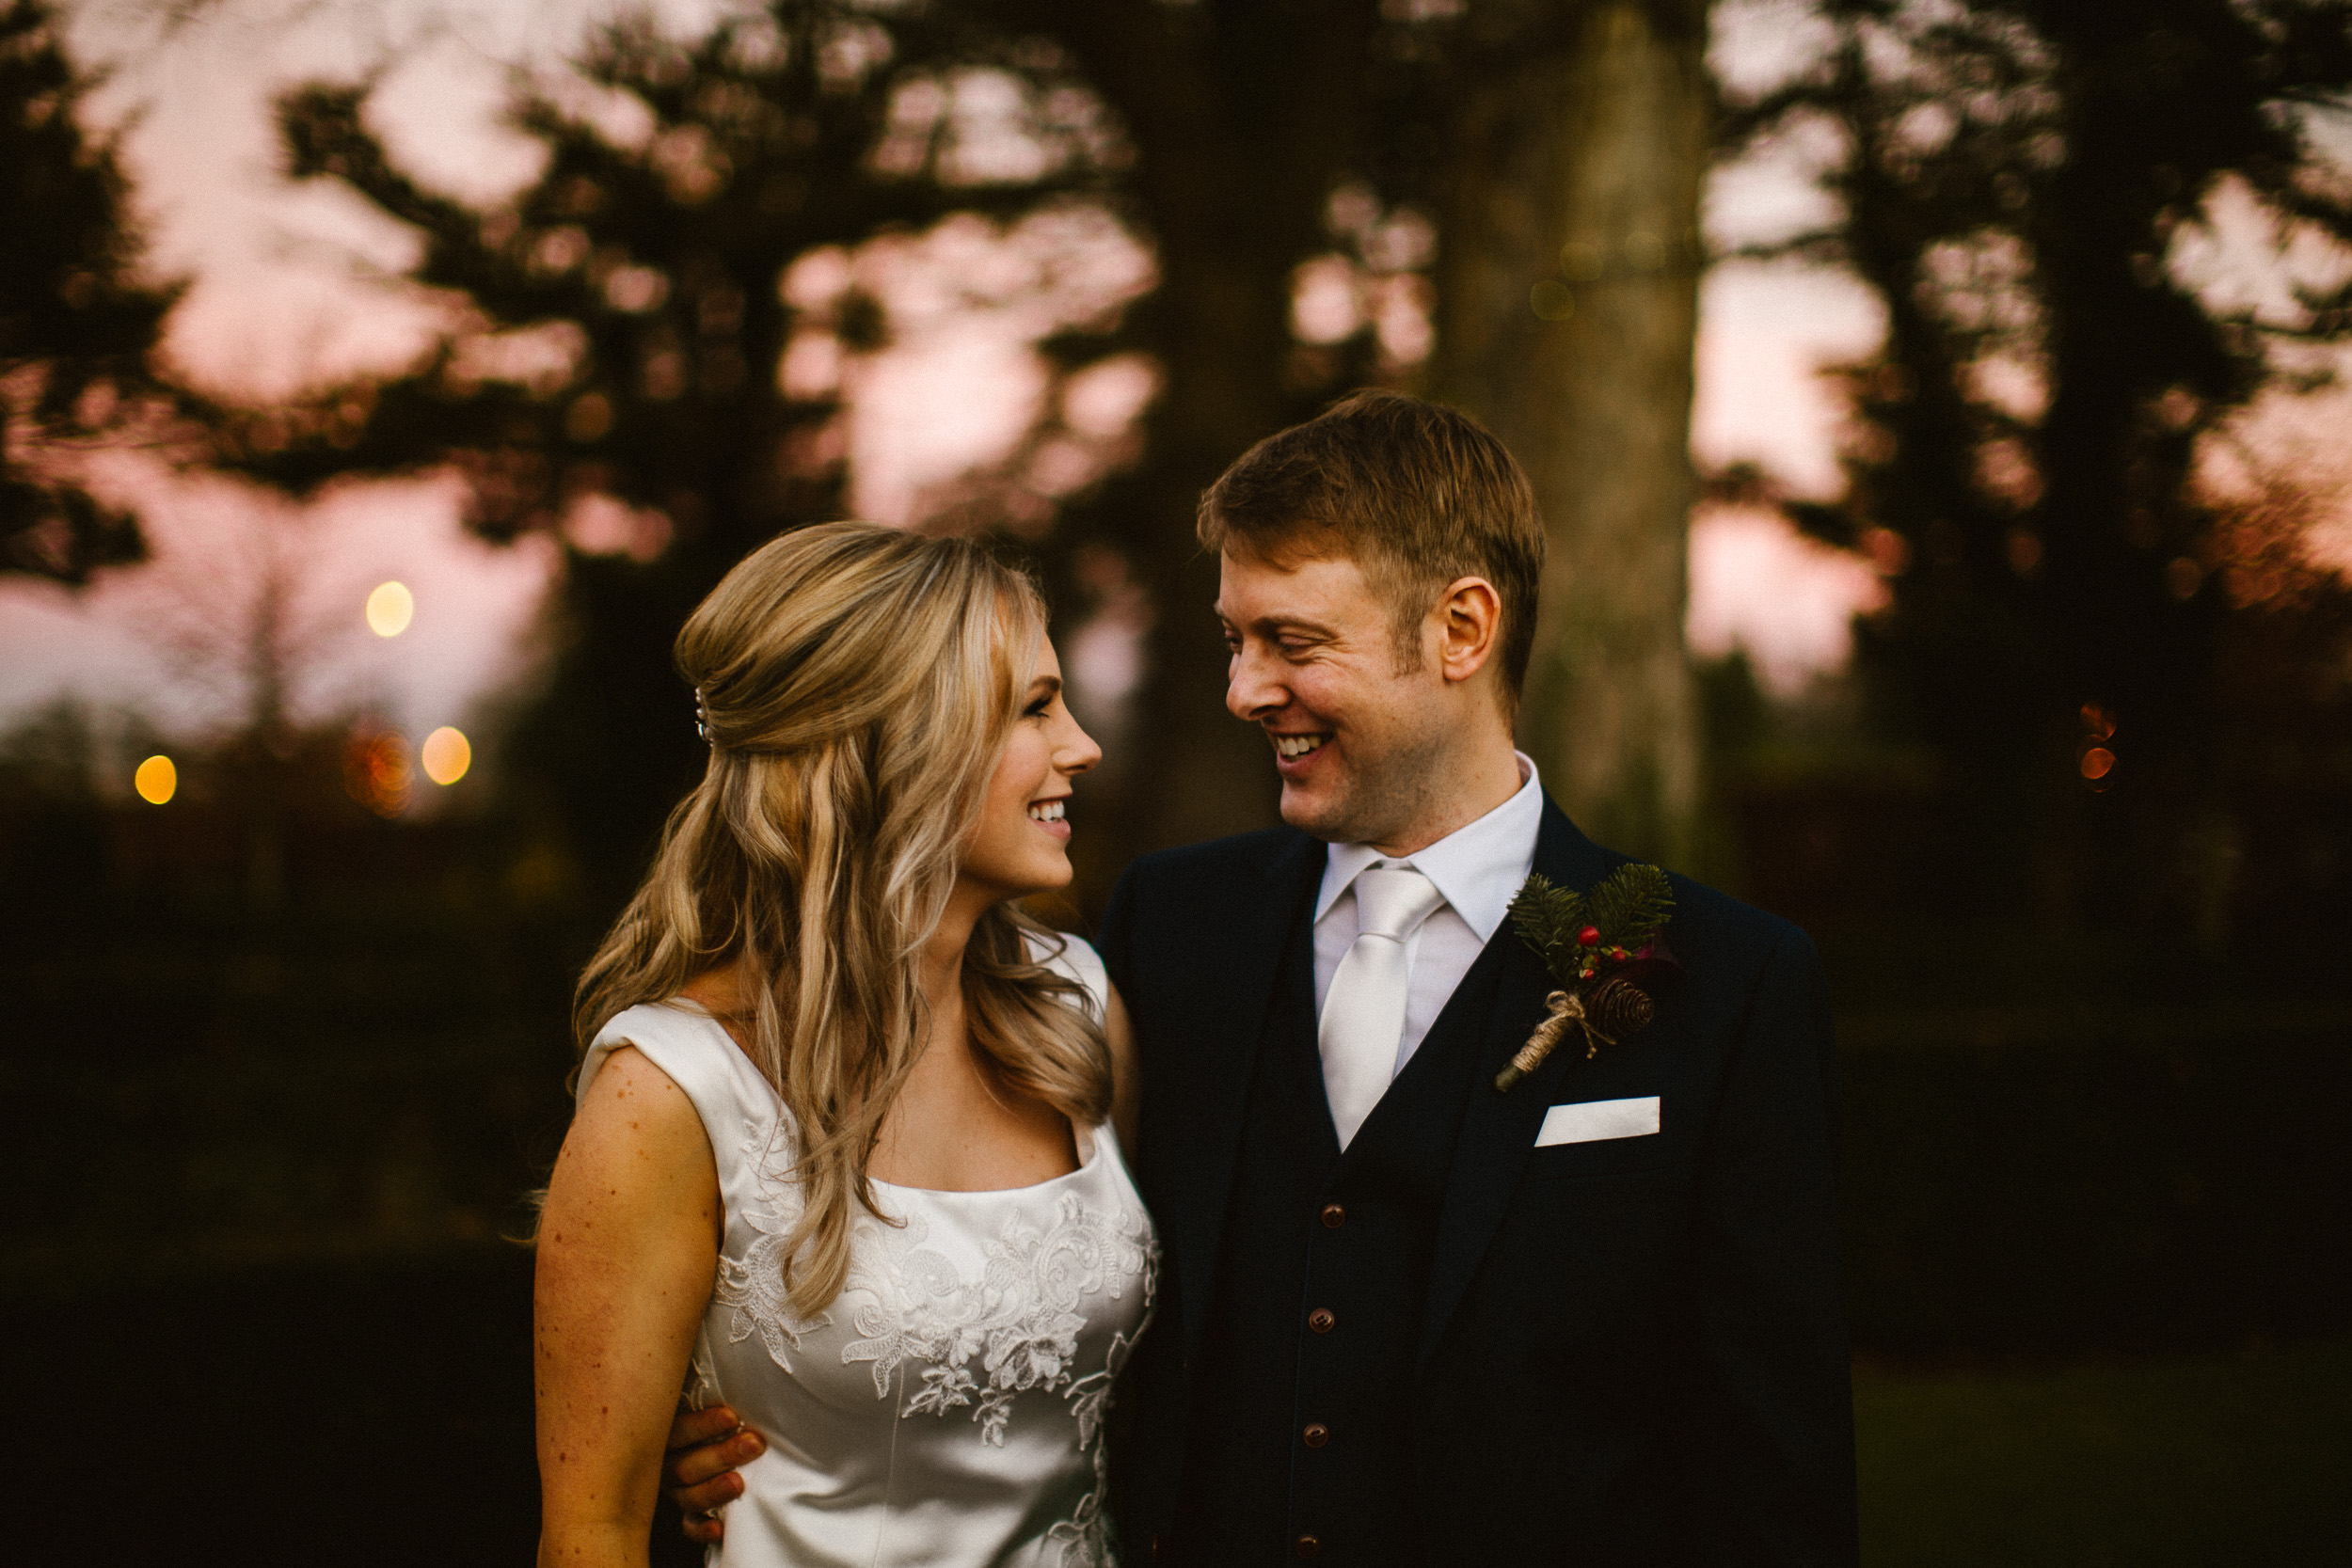 clairebyrnephotography-fun-wedding-photographer-ireland-creative-73.jpg